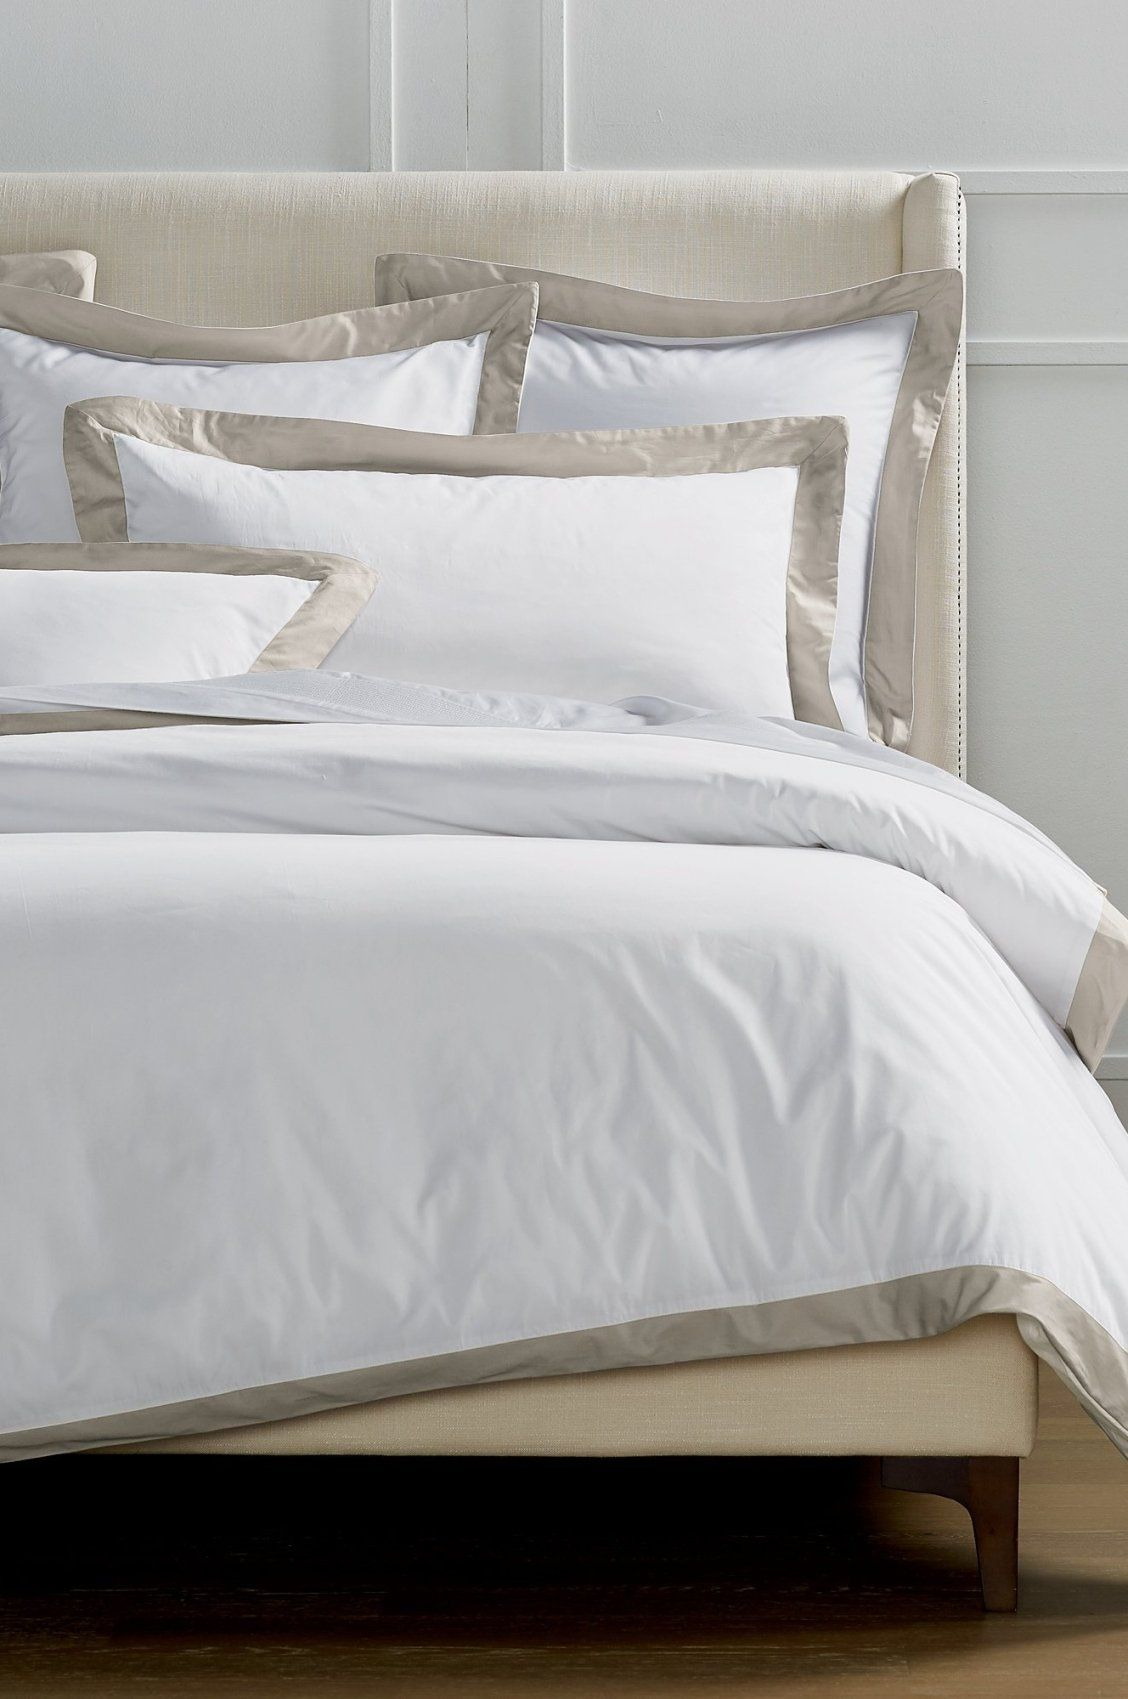 Resort Border Frame Bedding Collection Bed, Bedding